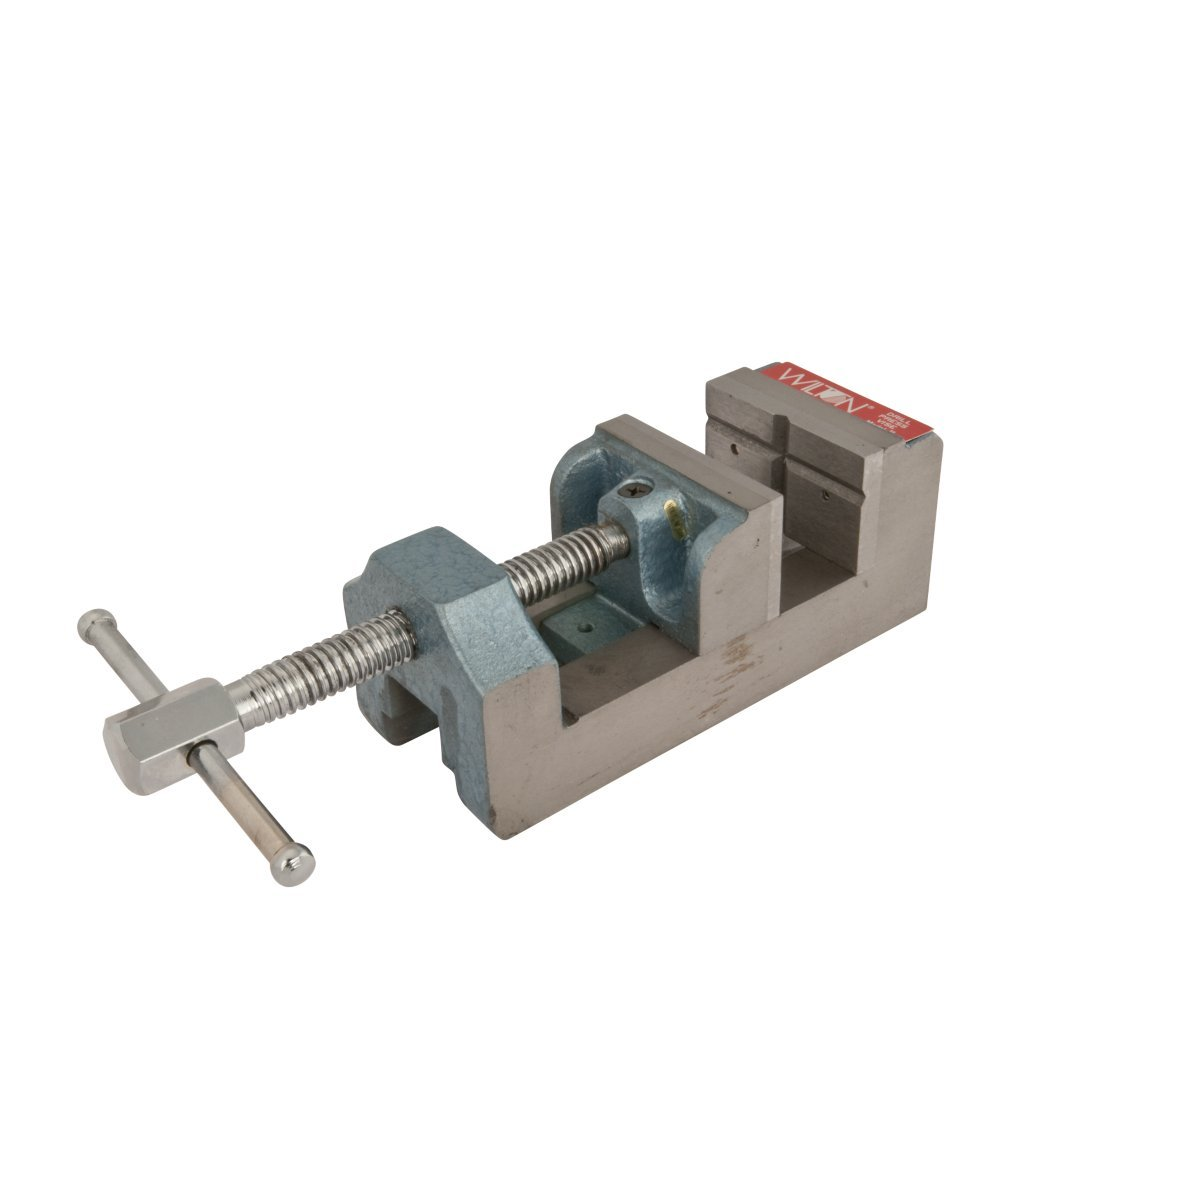 Wilton 12860 Drill Press Vise Continuous Nut 3-Inch Jaw Width 3-1//8-Inch Jaw Opening